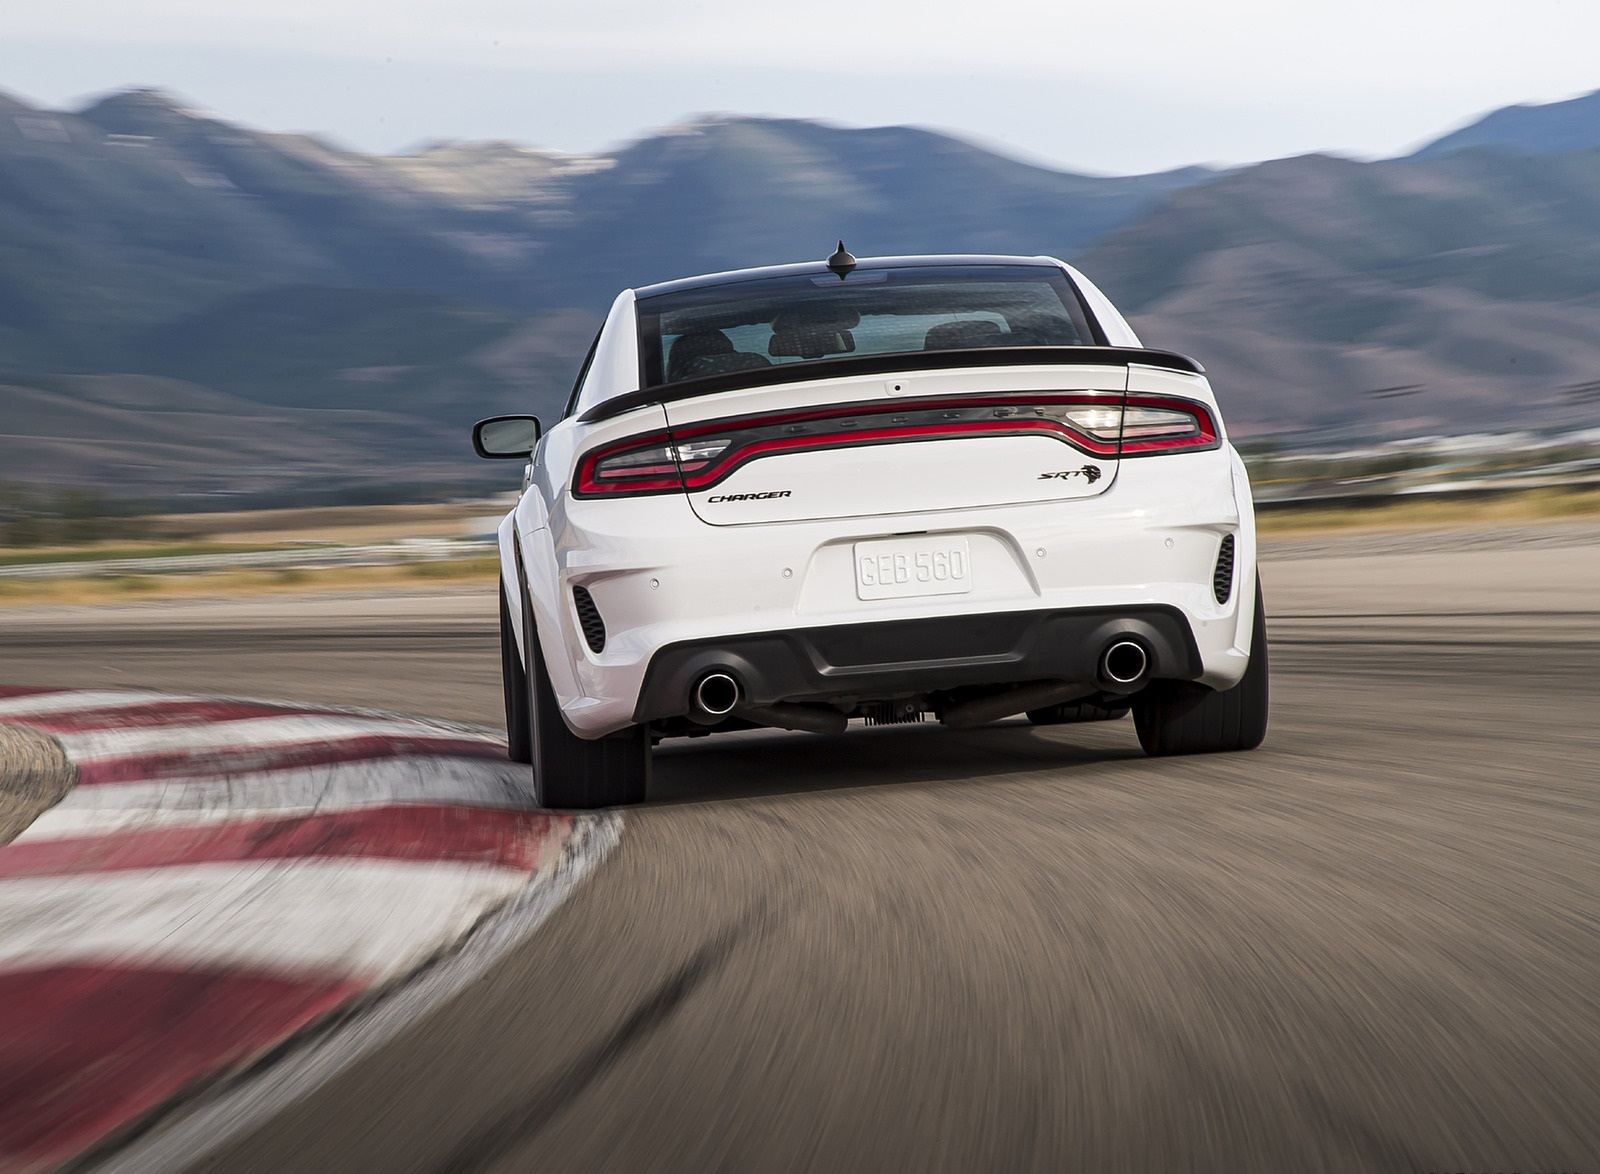 2021 Dodge Charger SRT Hellcat Redeye Rear Wallpapers (8)